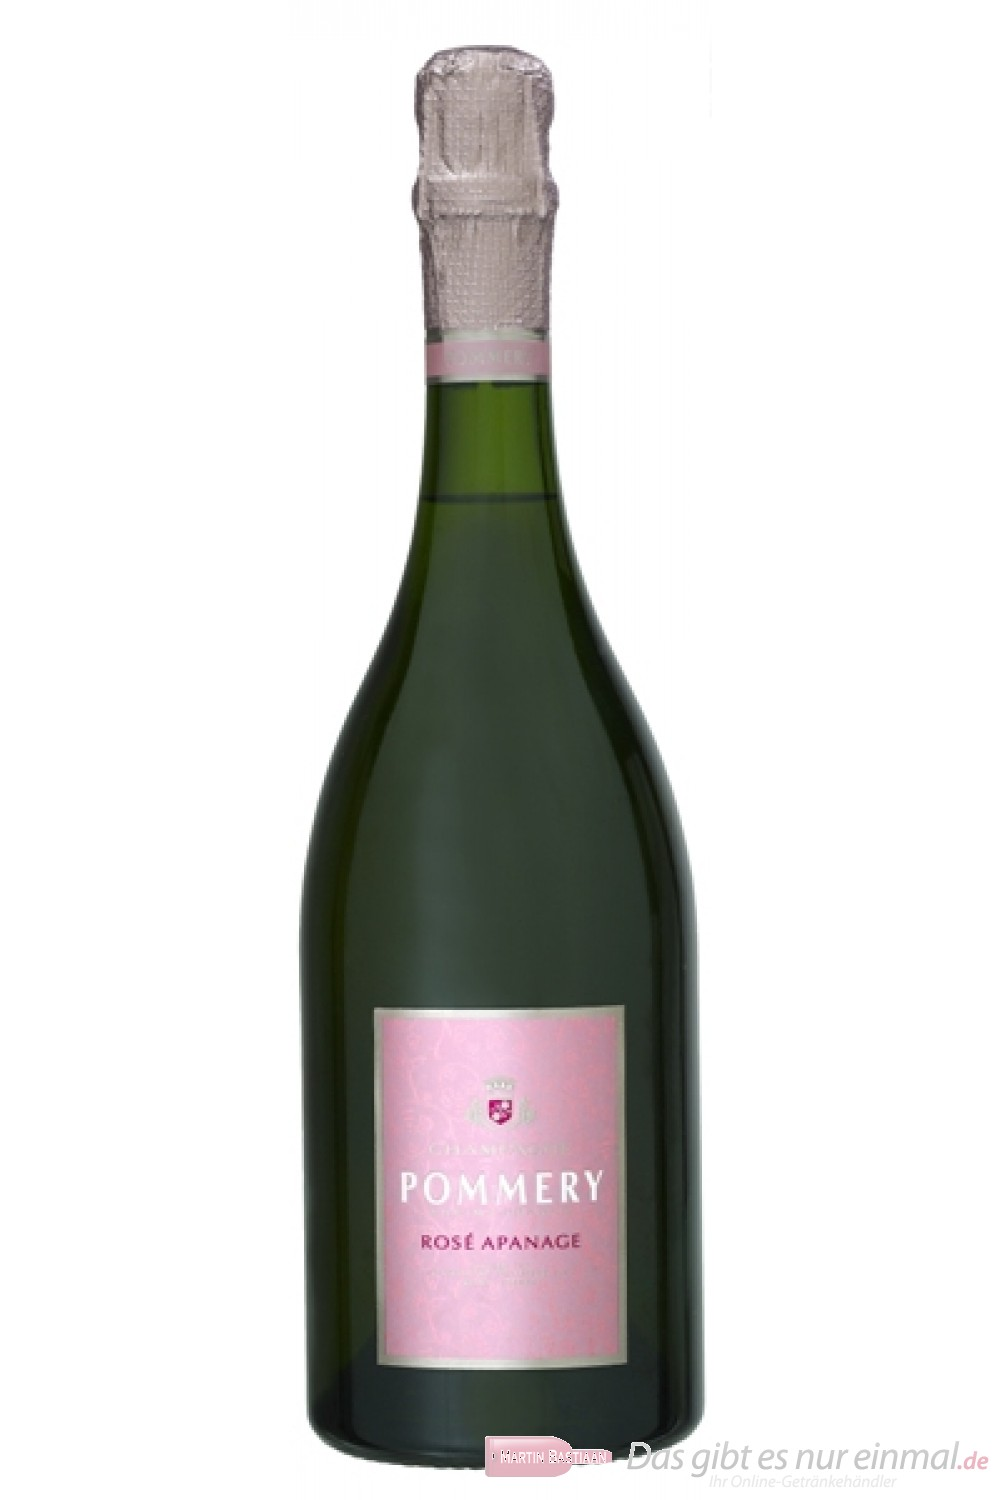 Pommery Rosé Apanage